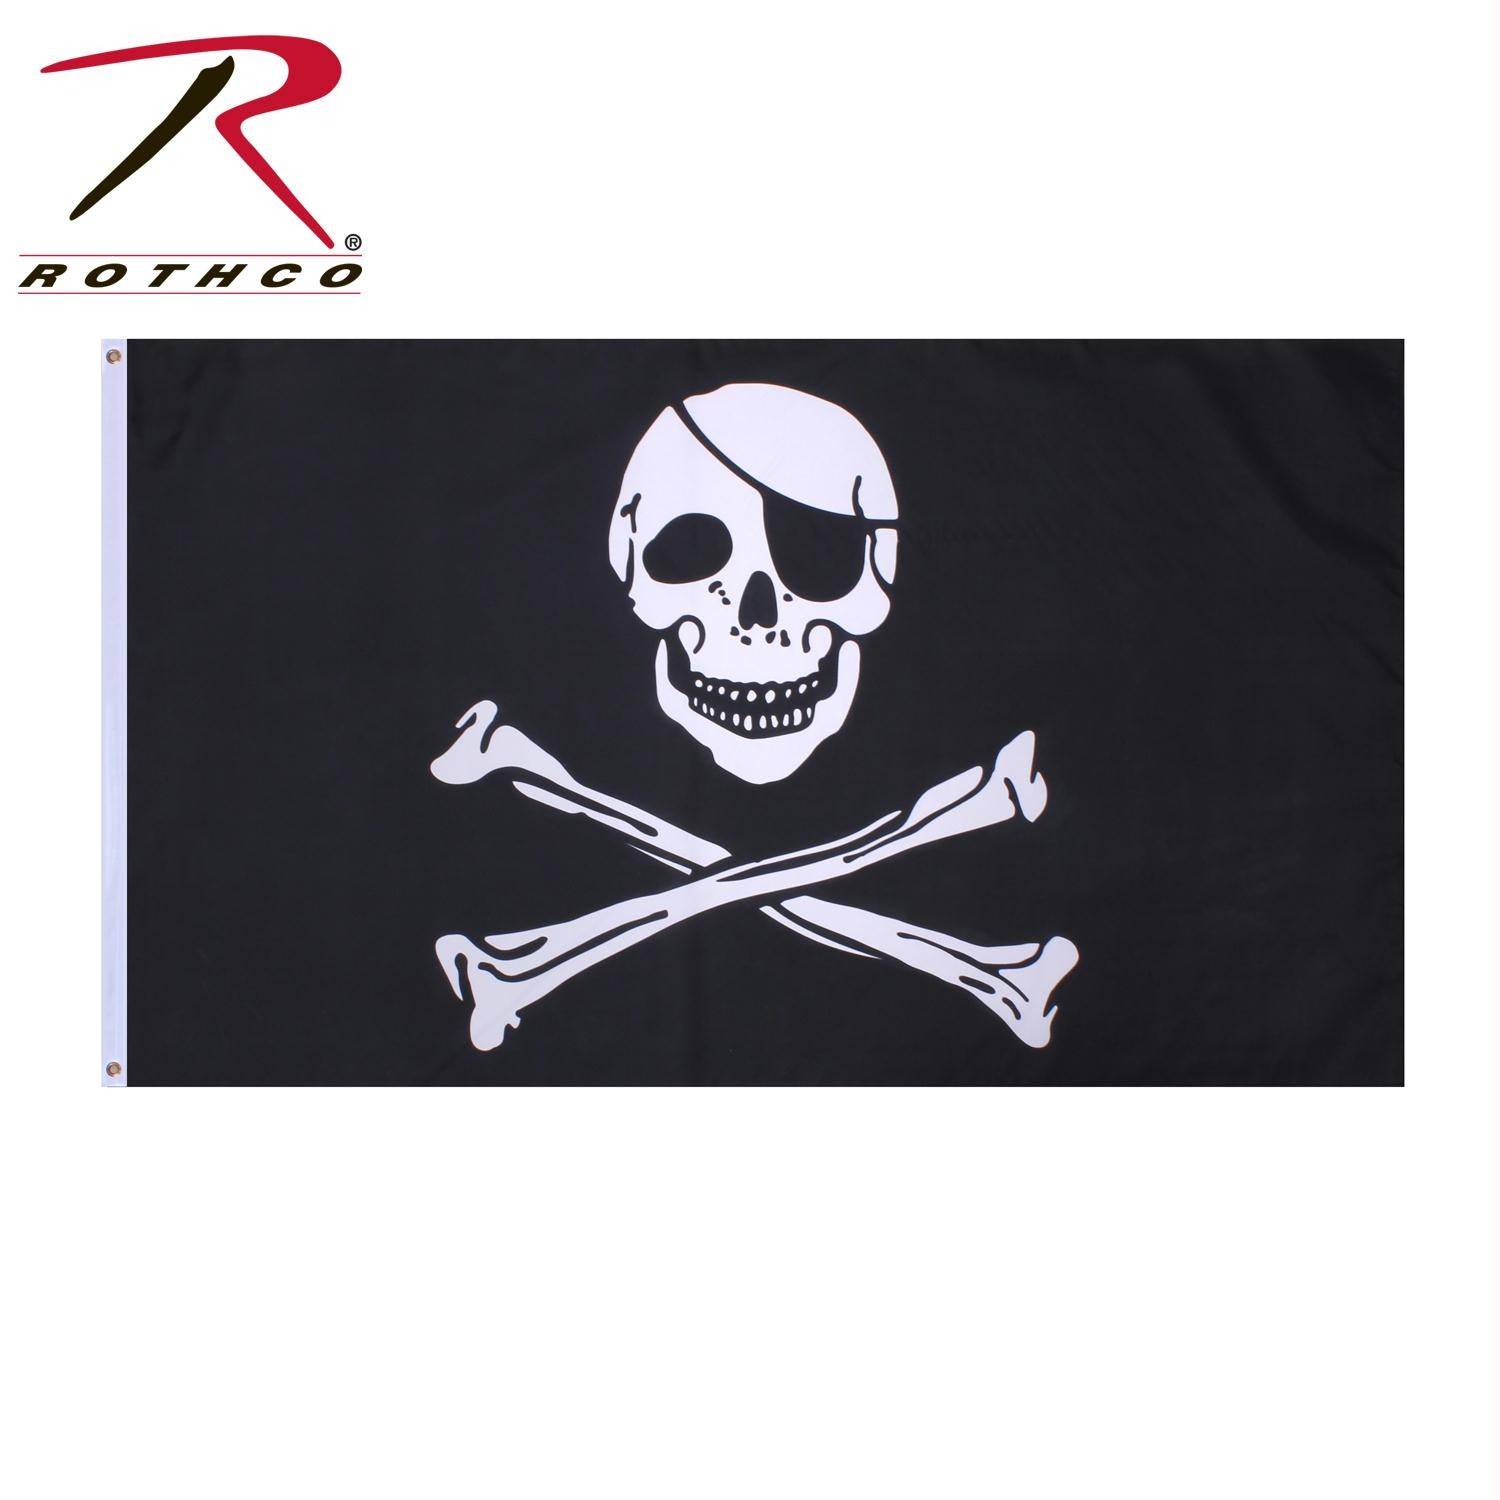 Rothco Jolly Roger Flag - 3' x 5'